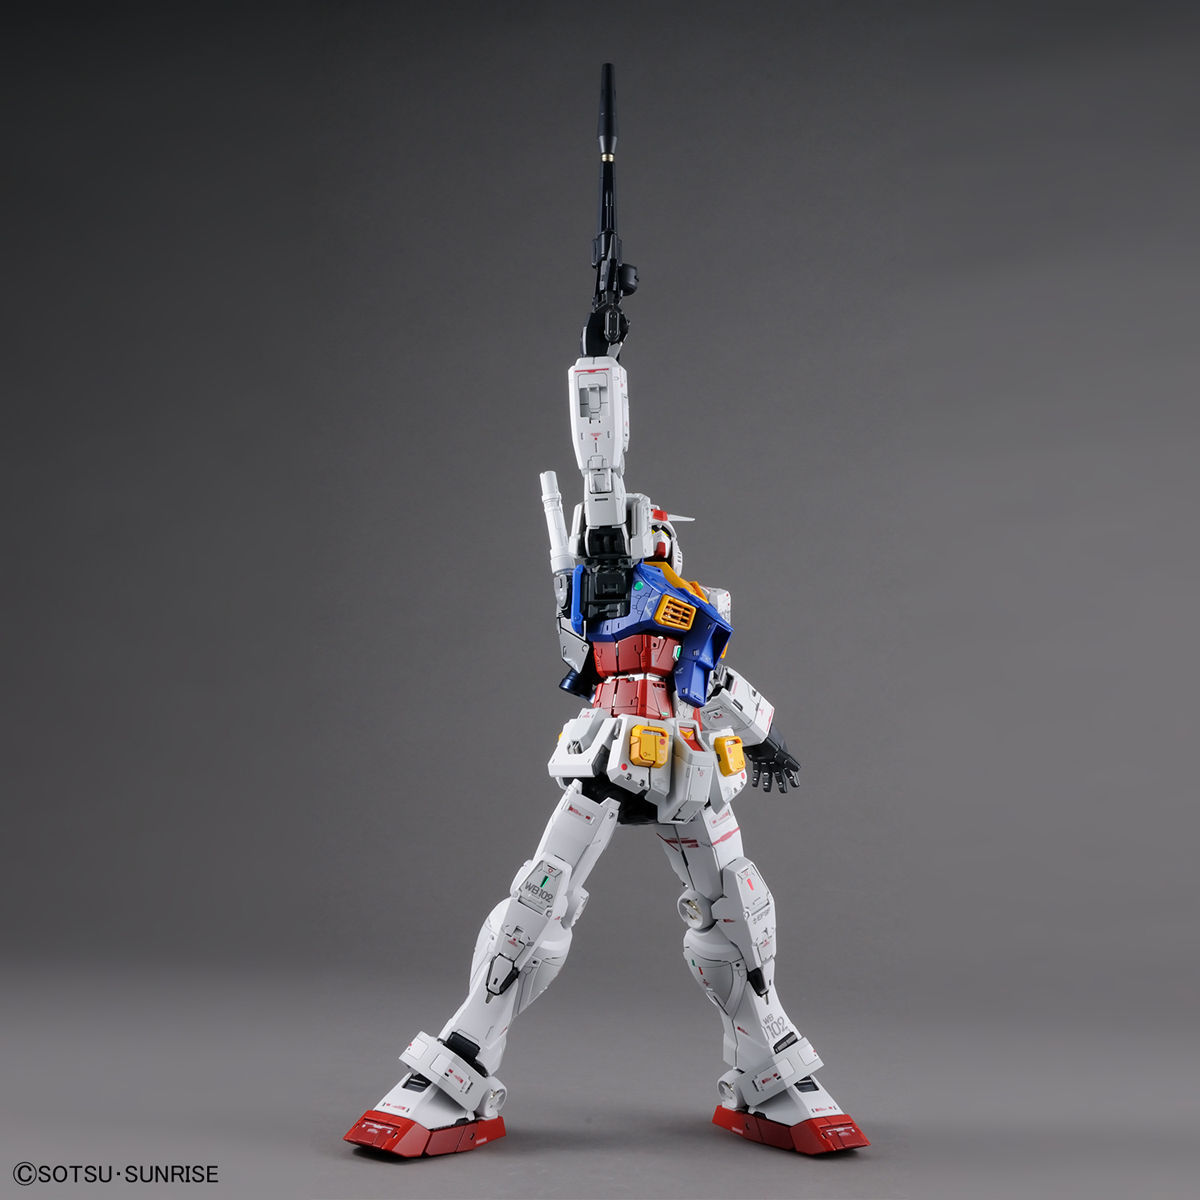 PG UNLEASHED 1/60 RX-78-2 ガンダム 05